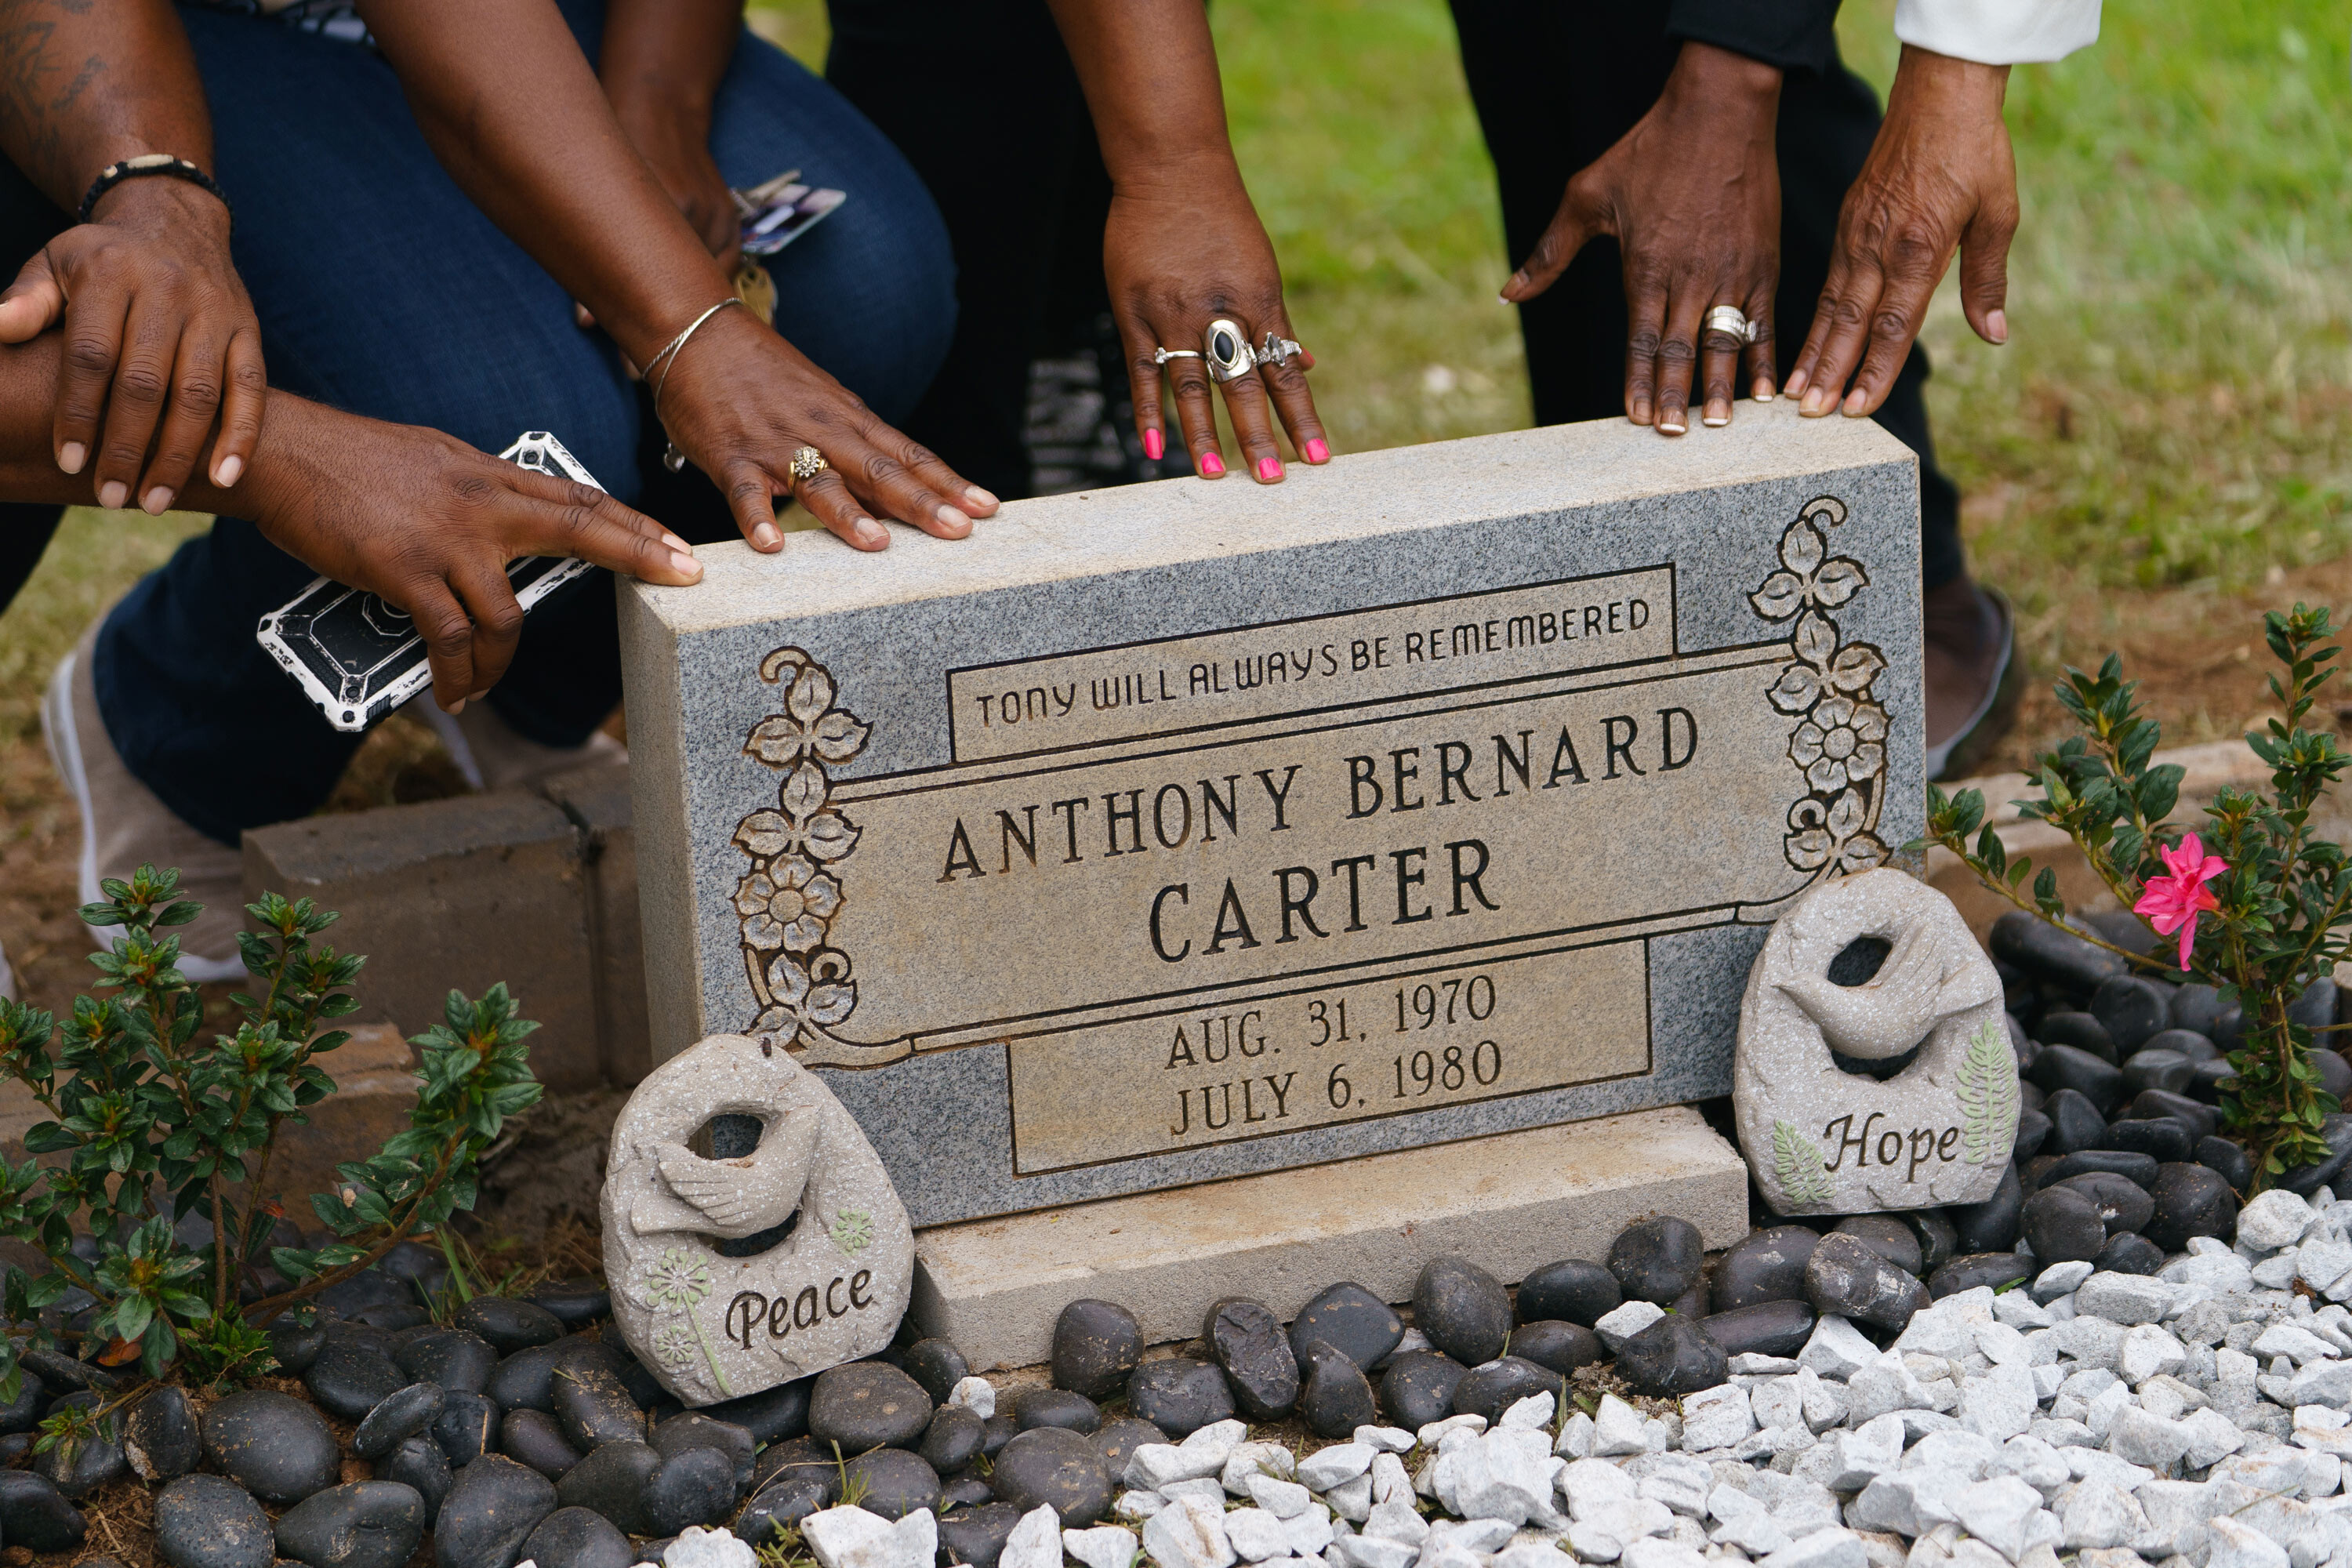 Victim of Atlanta child murders receives headstone more than 40 years after his death